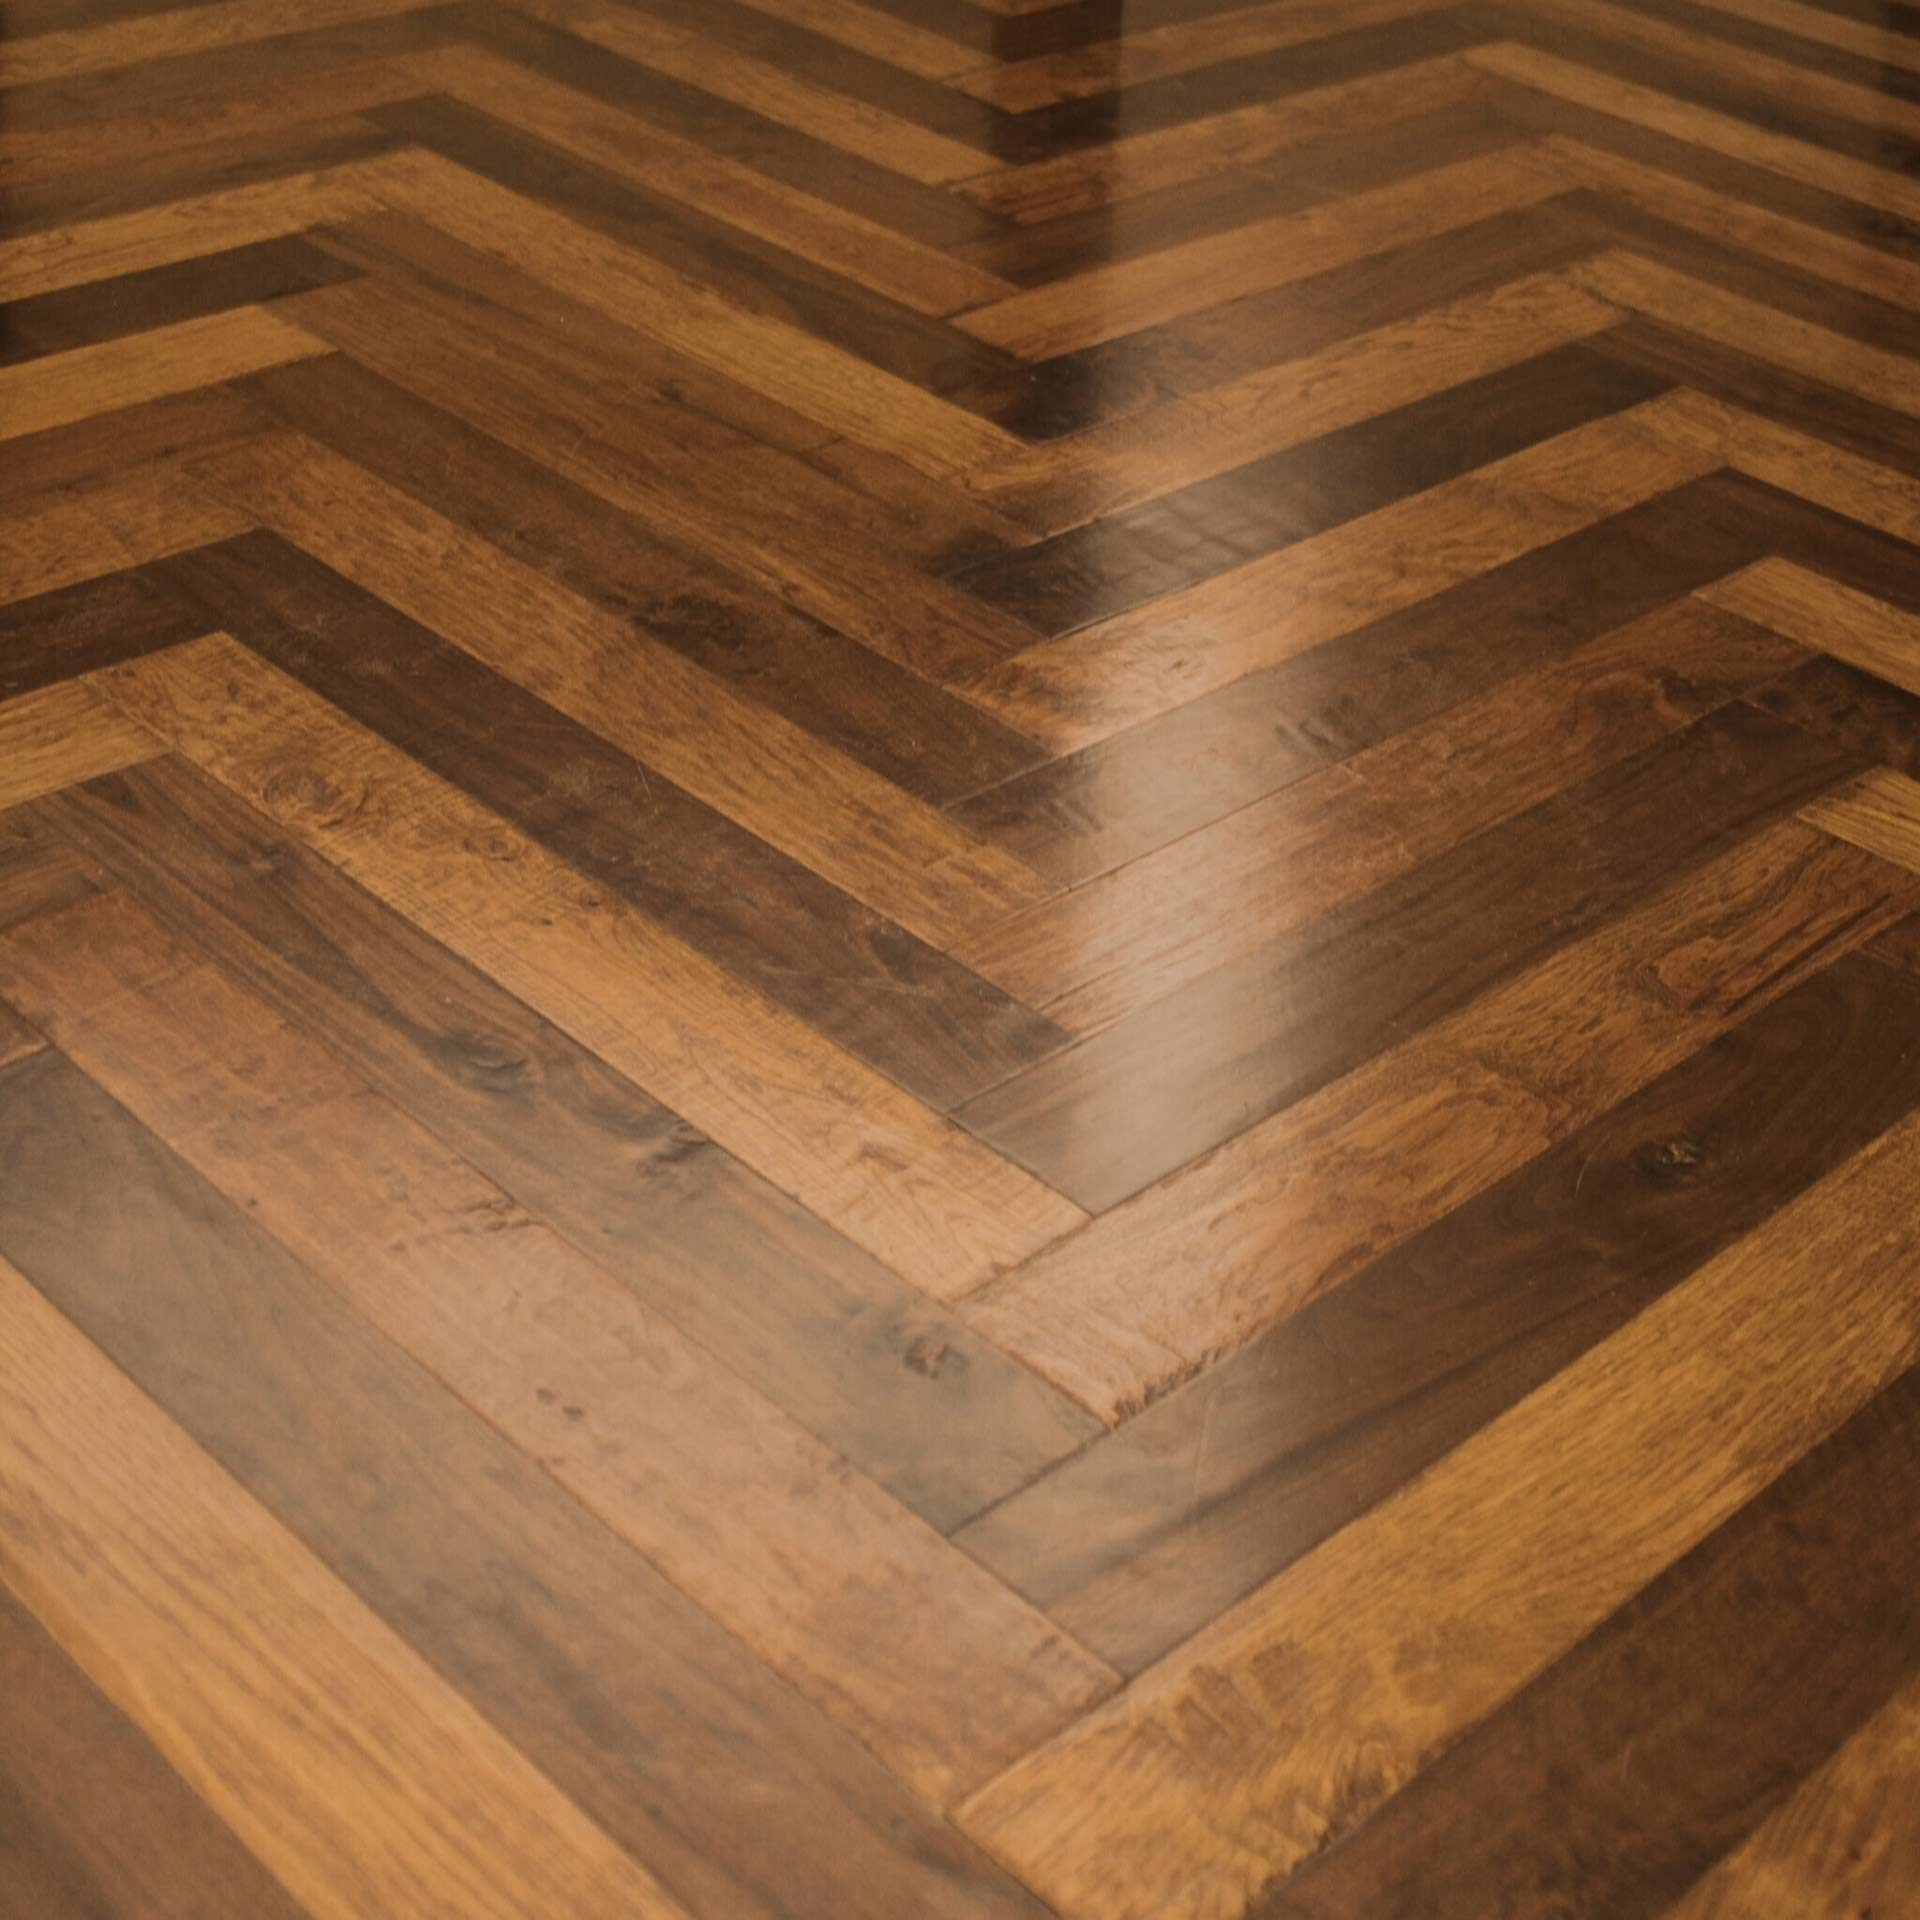 Renaissance Wood Floors Tulsa